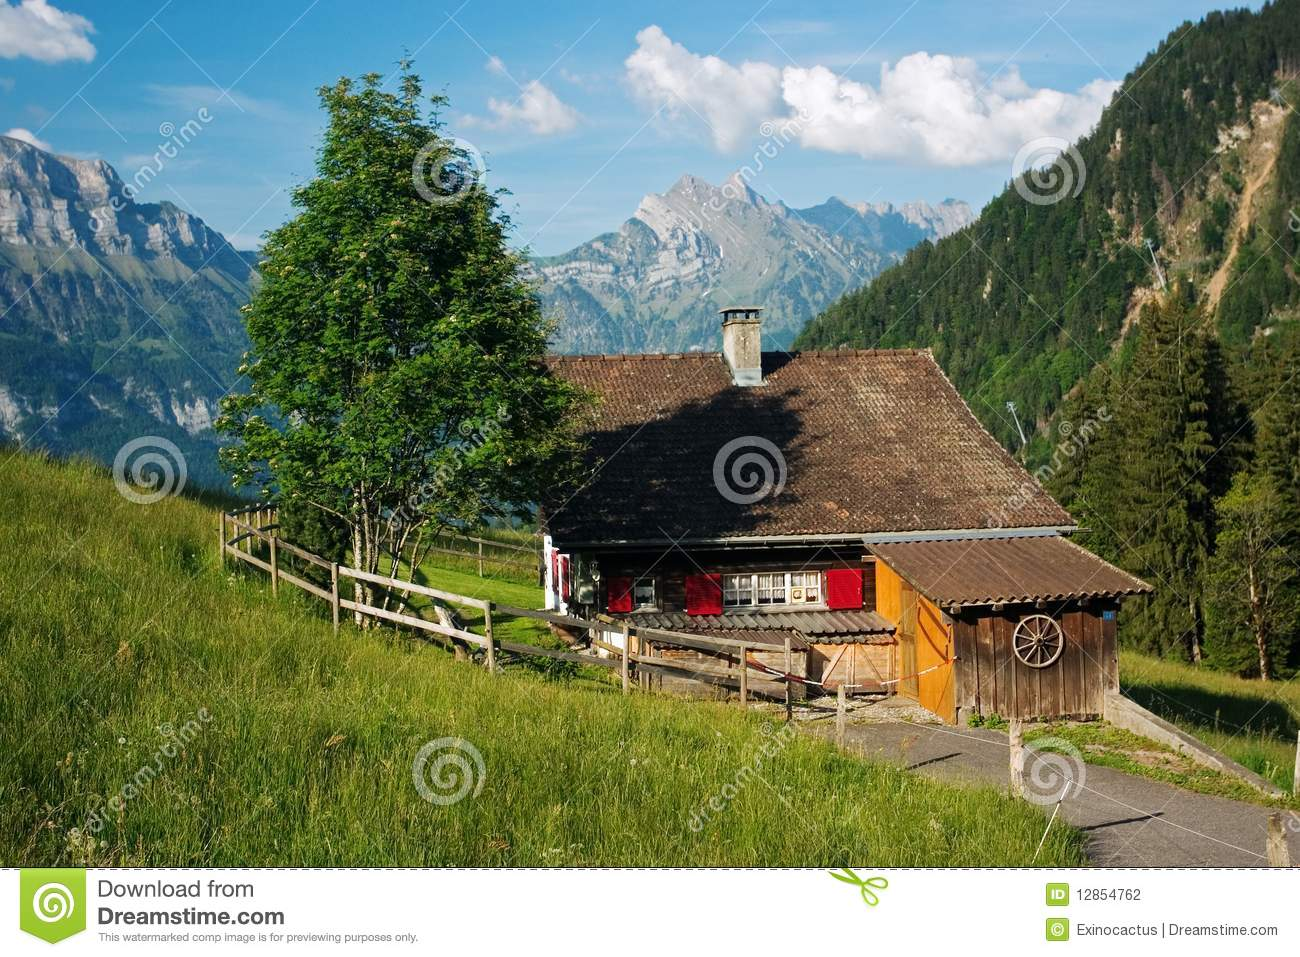 Vacation house in the mountains stock photo image 12854762 - Summer houses mountains ...